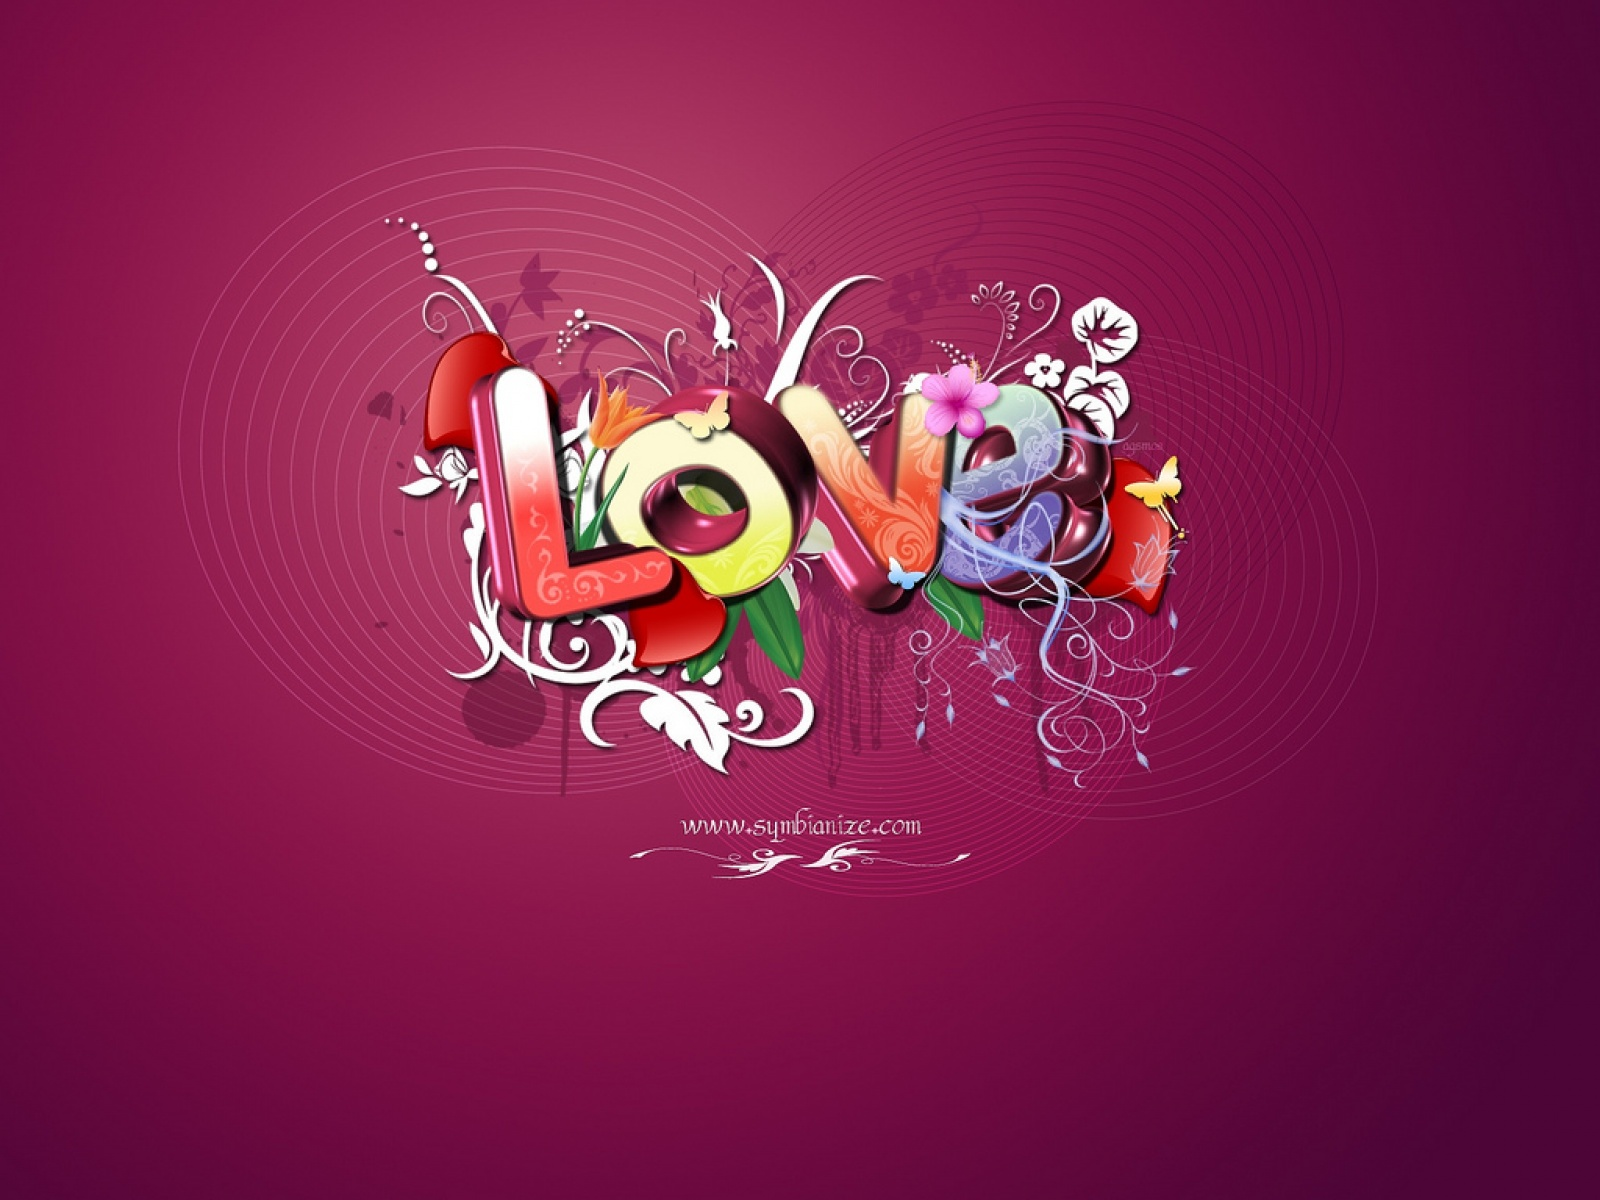 wallpapers valentines day hd desktop backgrounds wallpapers valentines 1600x1200